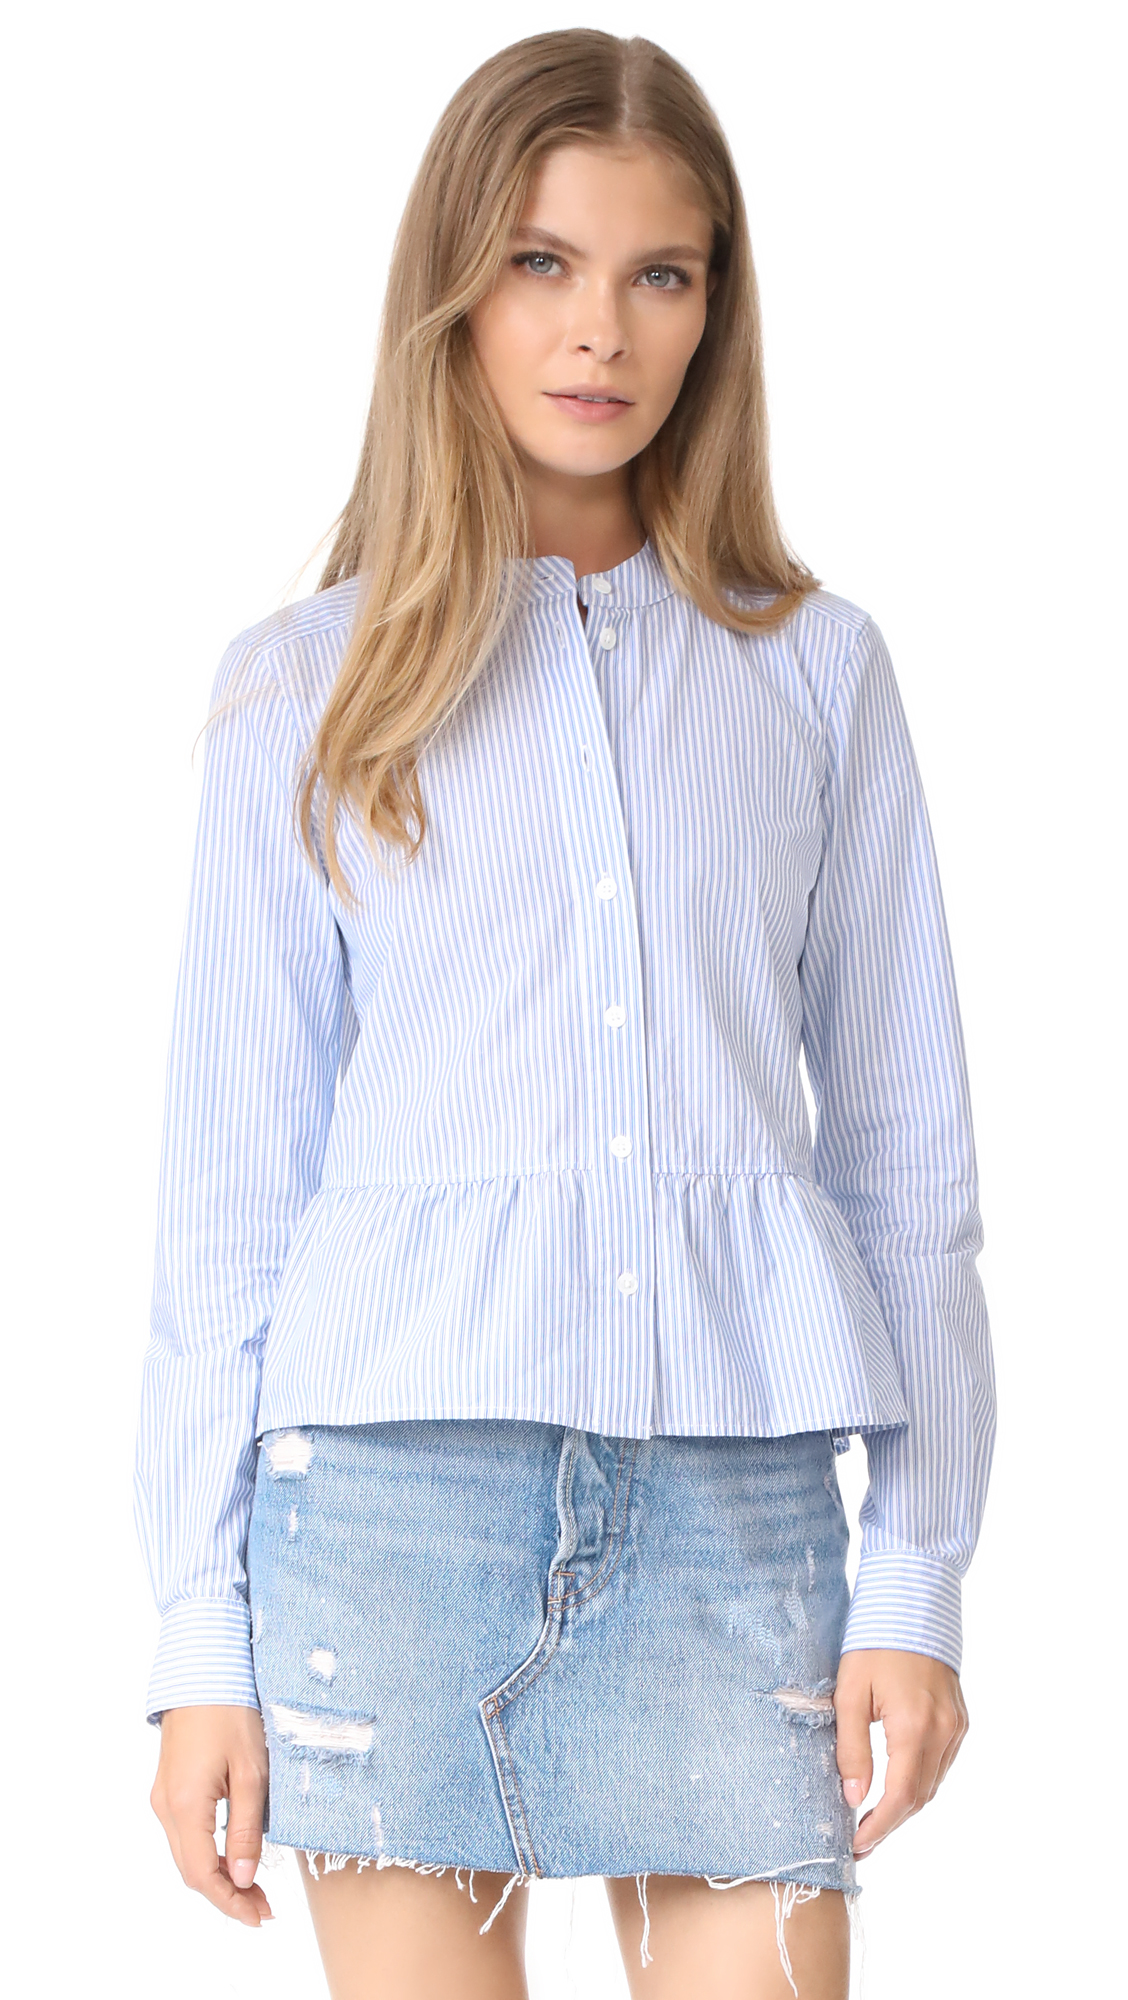 Veronica Beard Jean Charlotte Crew Neck Shirt - Blue/White